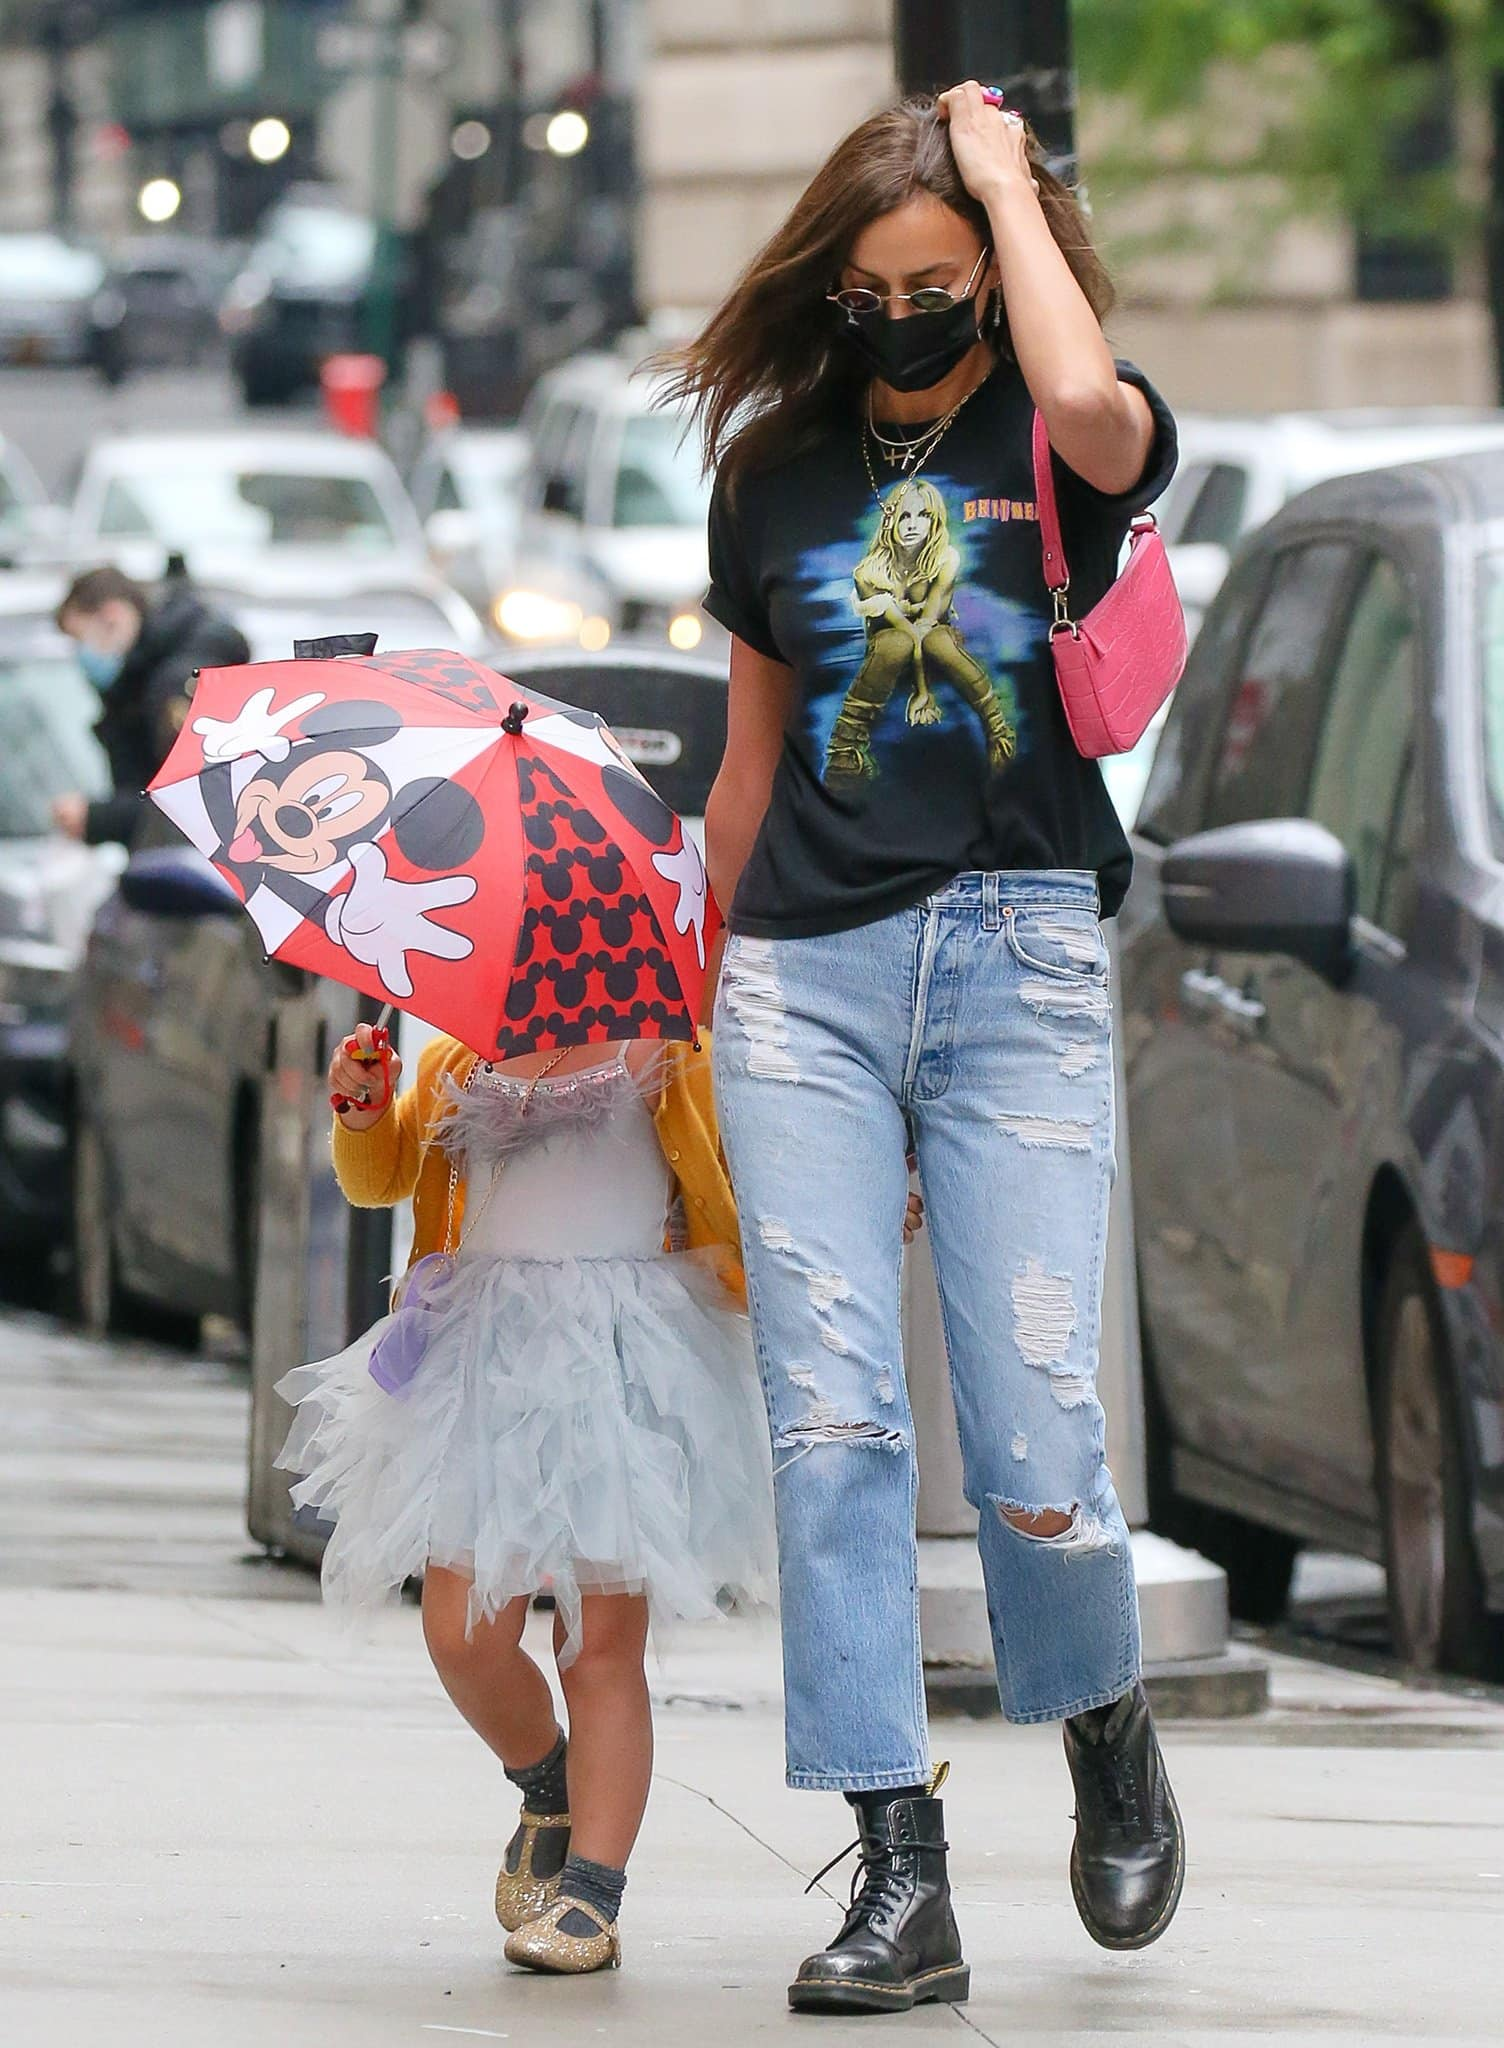 Irina Shayk goes the '90s route while out with her daughter in New York City on June 3, 2021